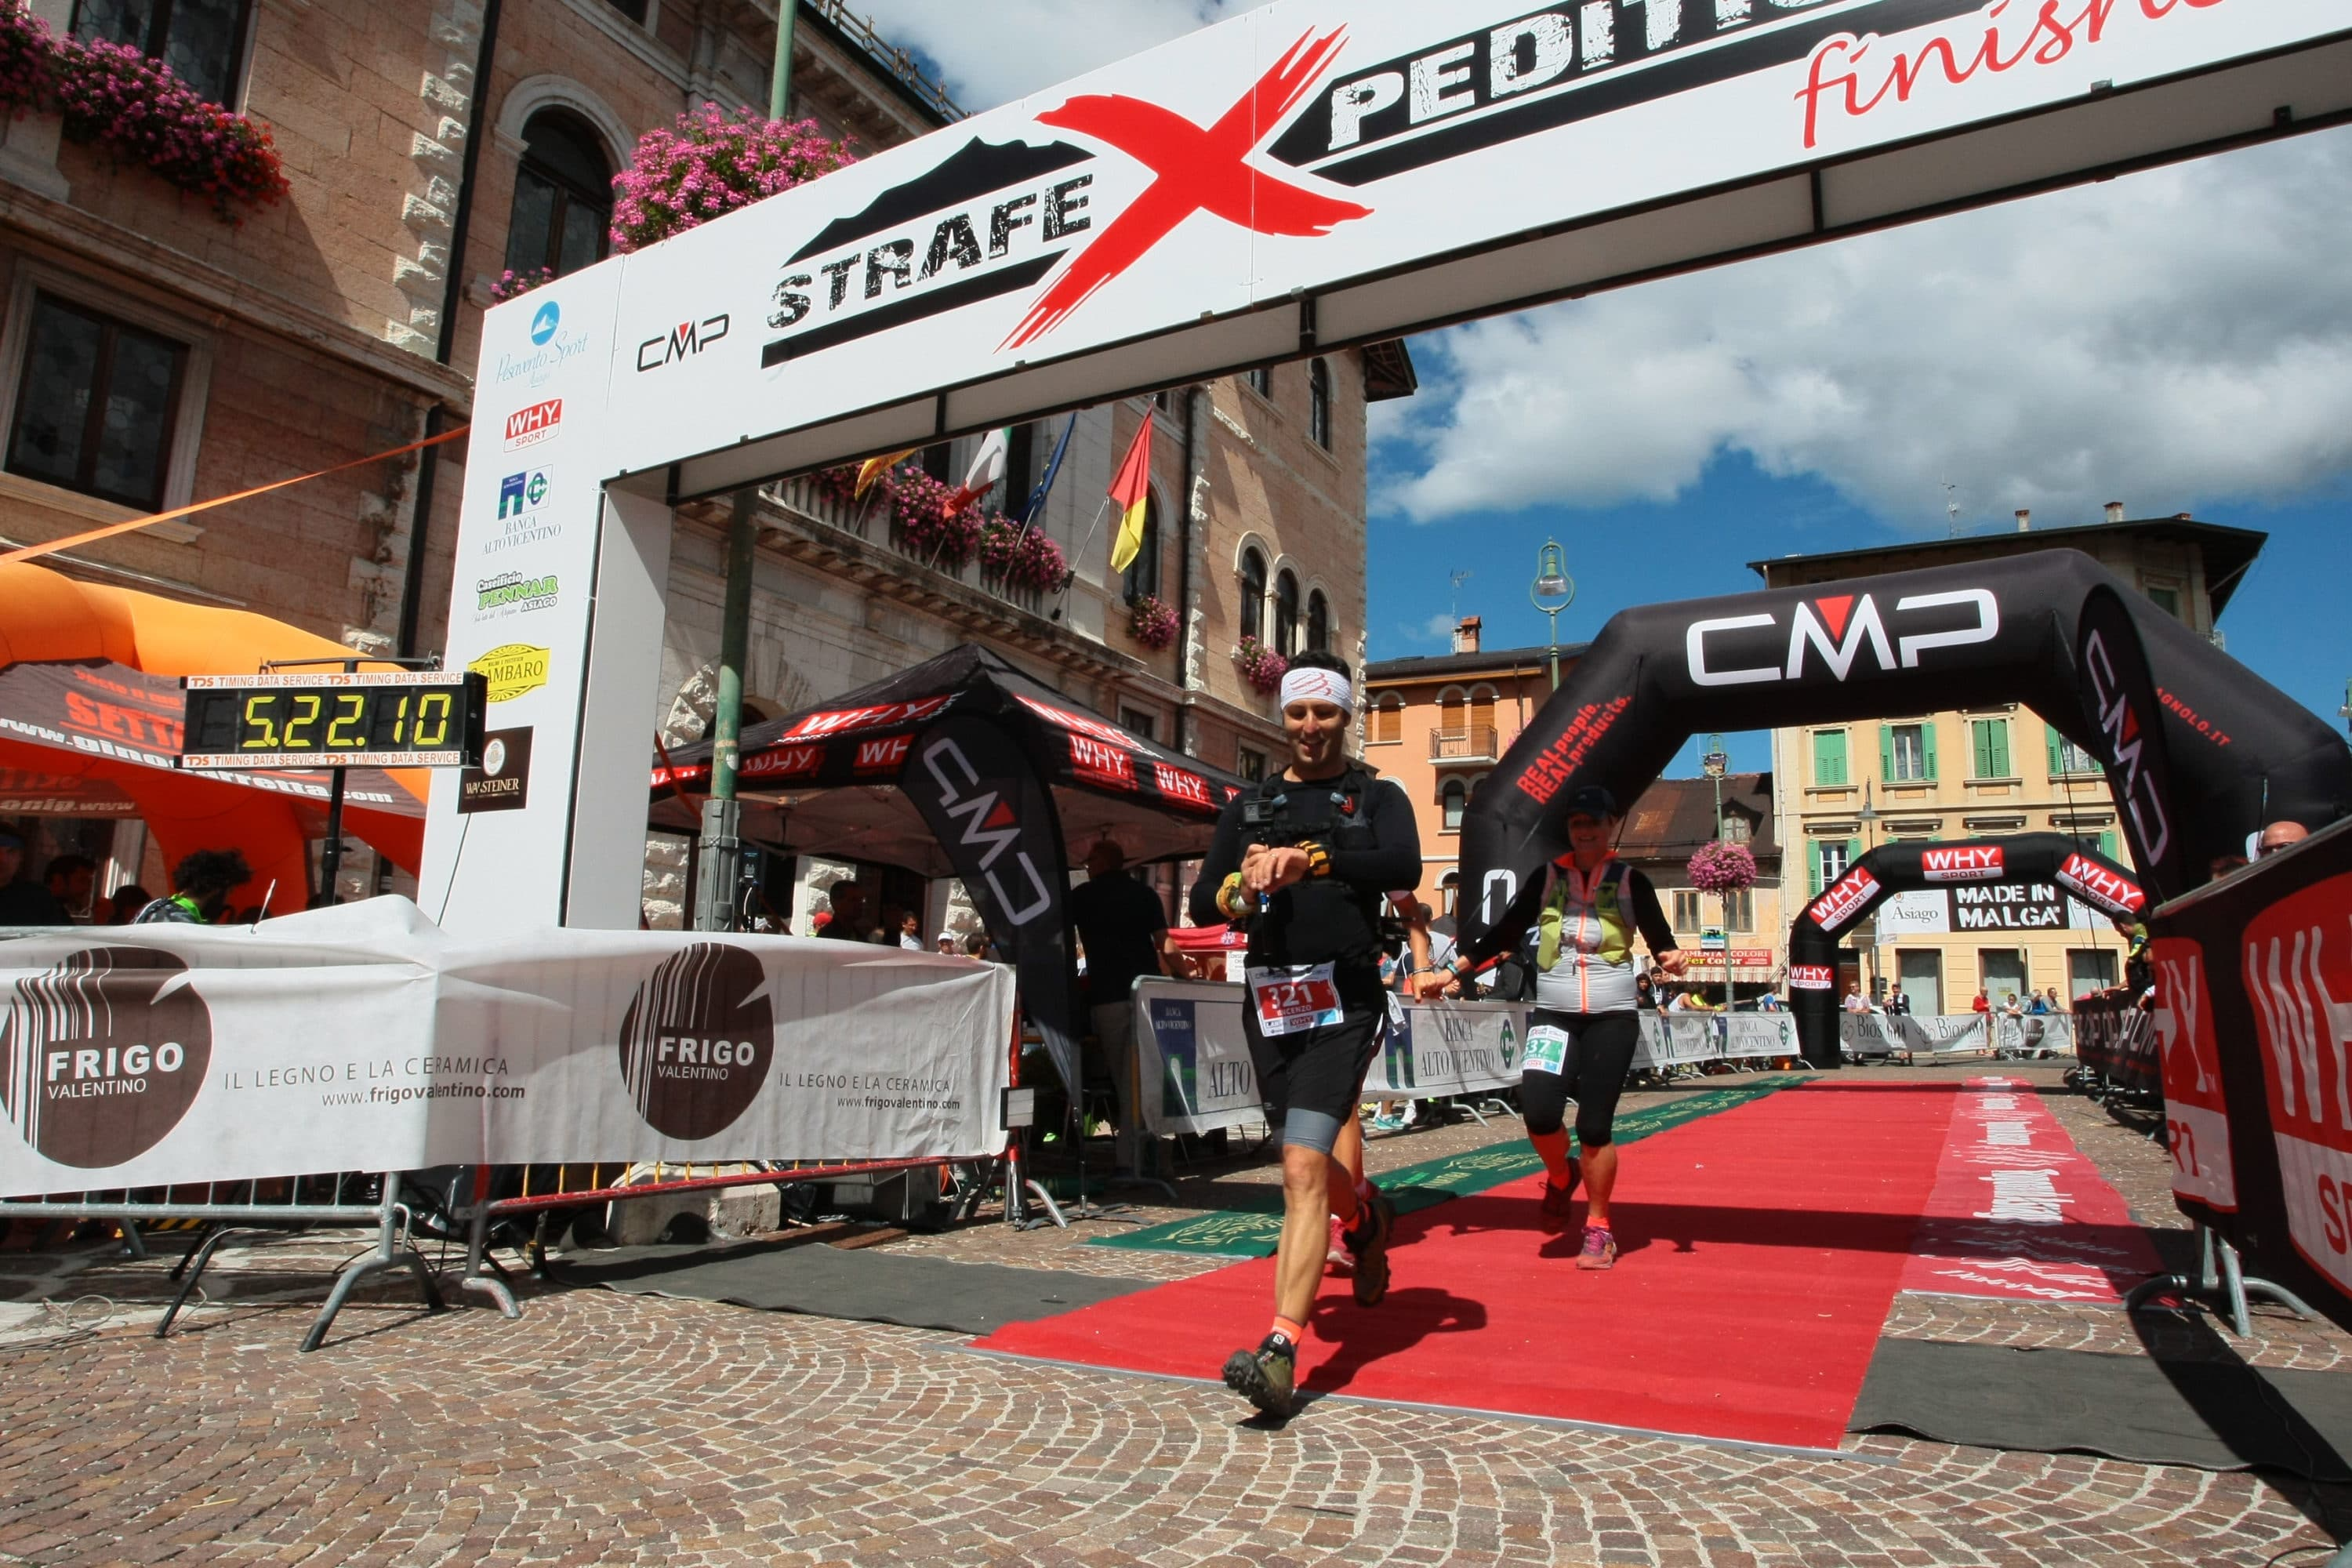 Runnerpercaso | StrafExpedition 2017 Finisher